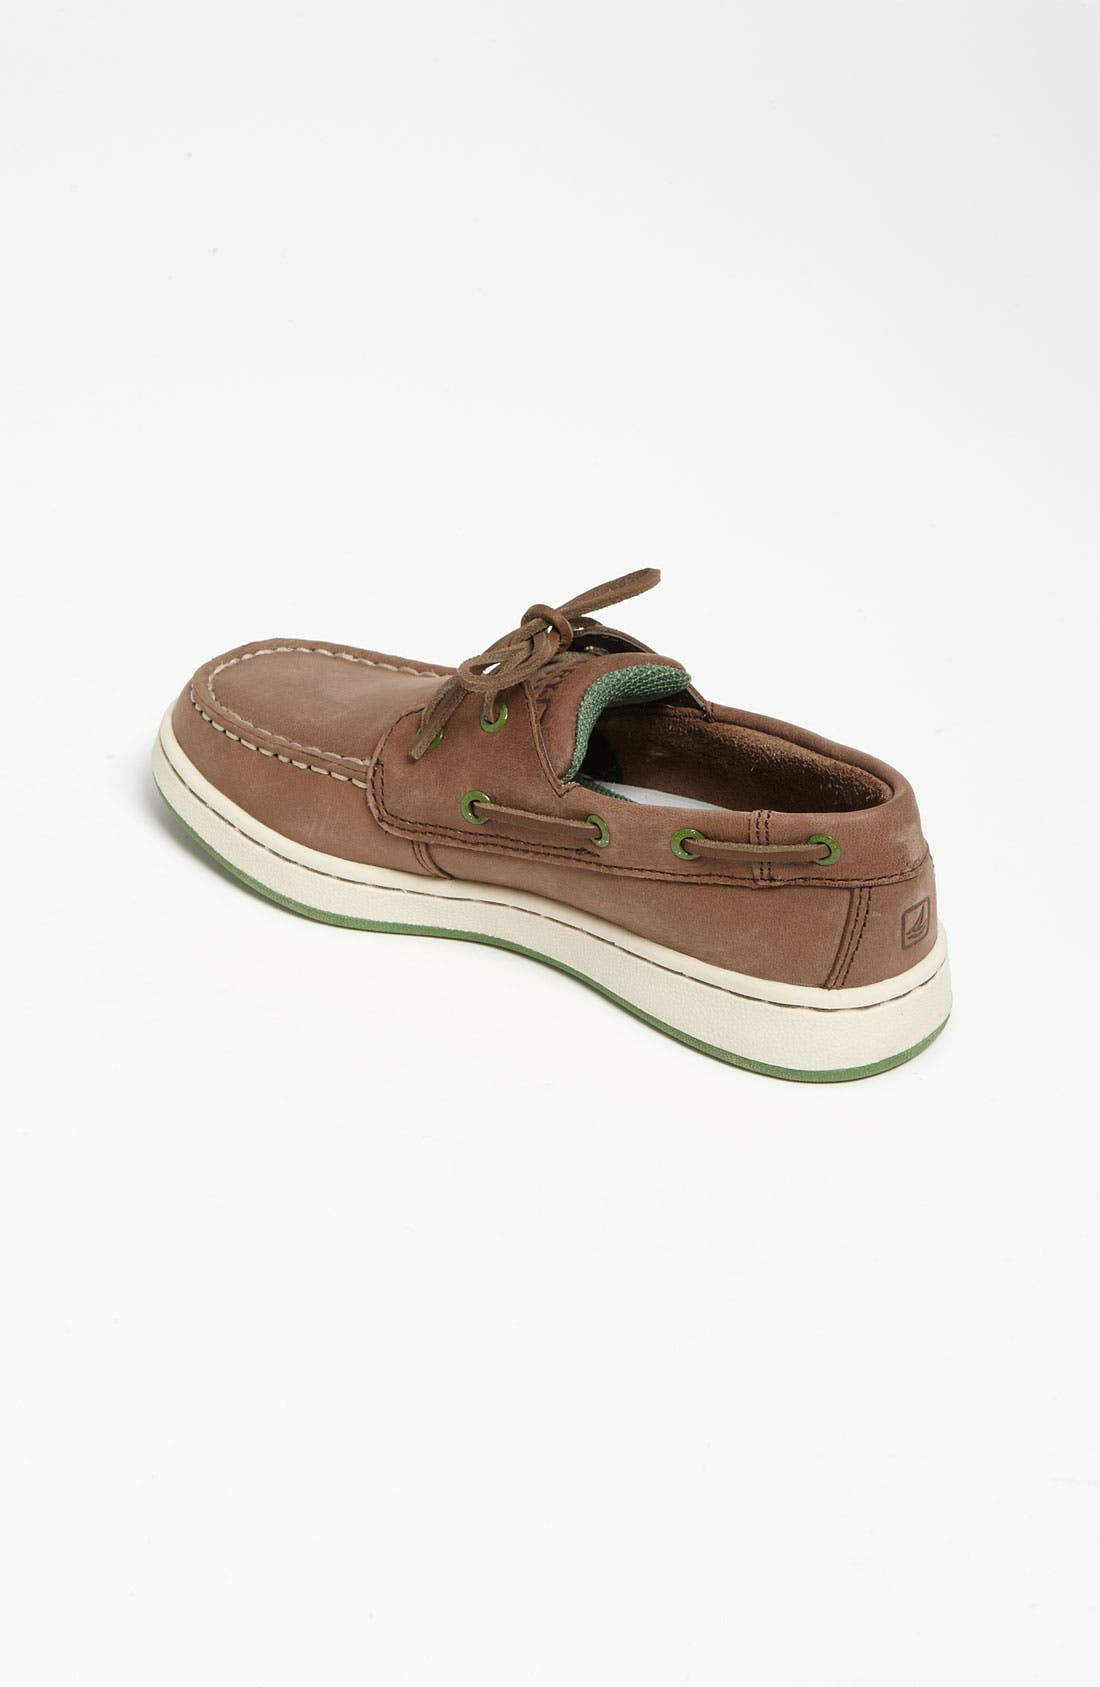 Alternate Image 2  - Sperry Top-Sider® Kids 'Cup 2 Eye' Boat Shoe (Little Kid & Big Kid)